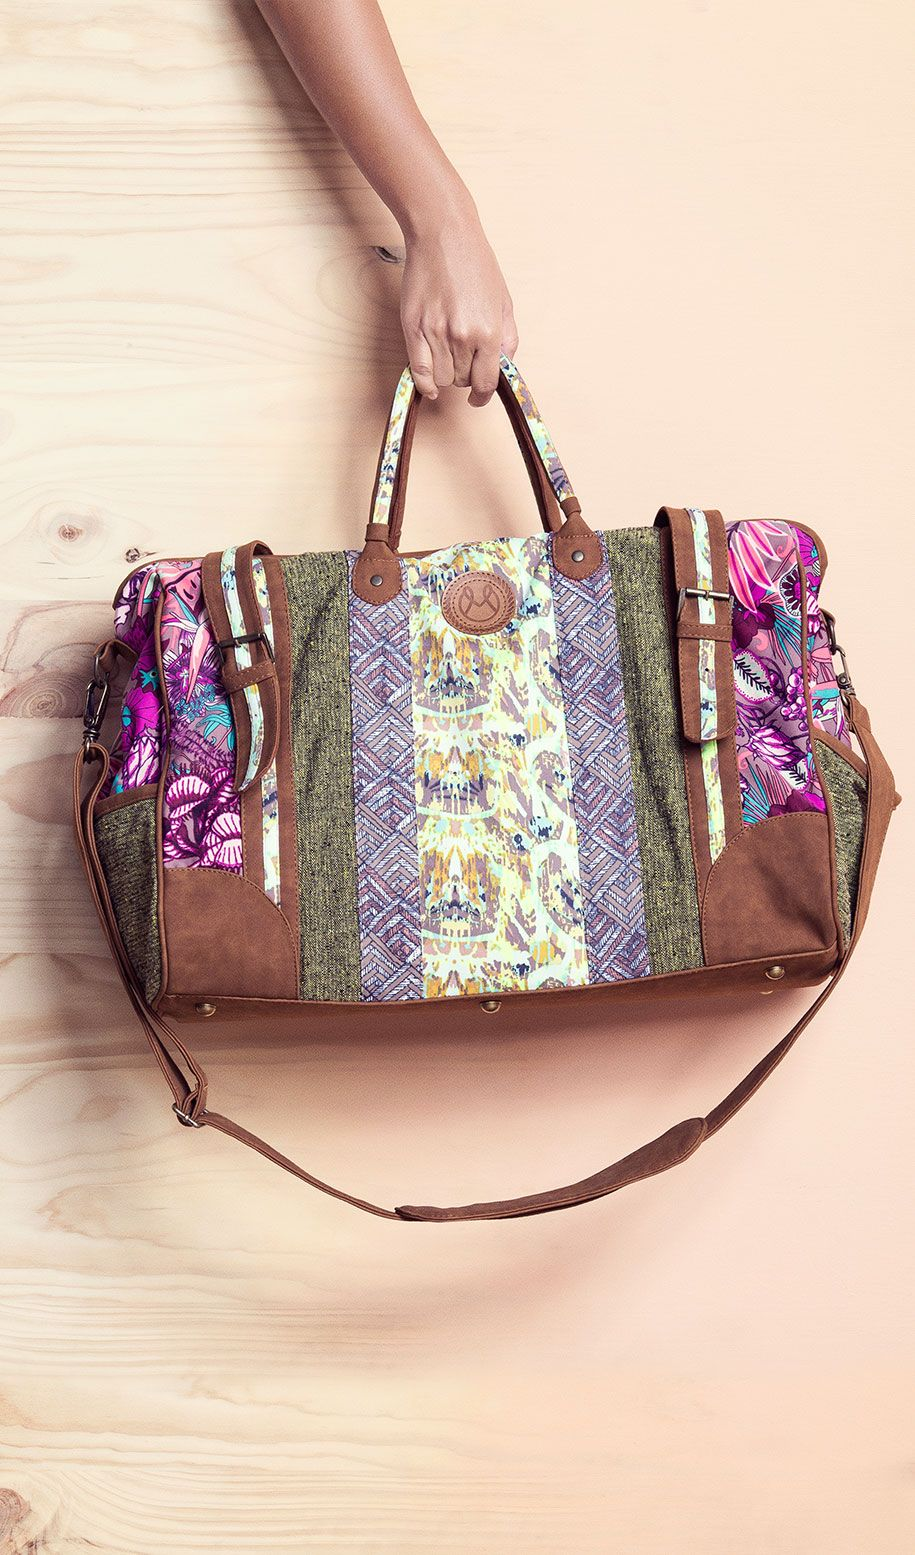 Maaji Beach Accessories brings you it's Beach Bag Weekender Bag ...